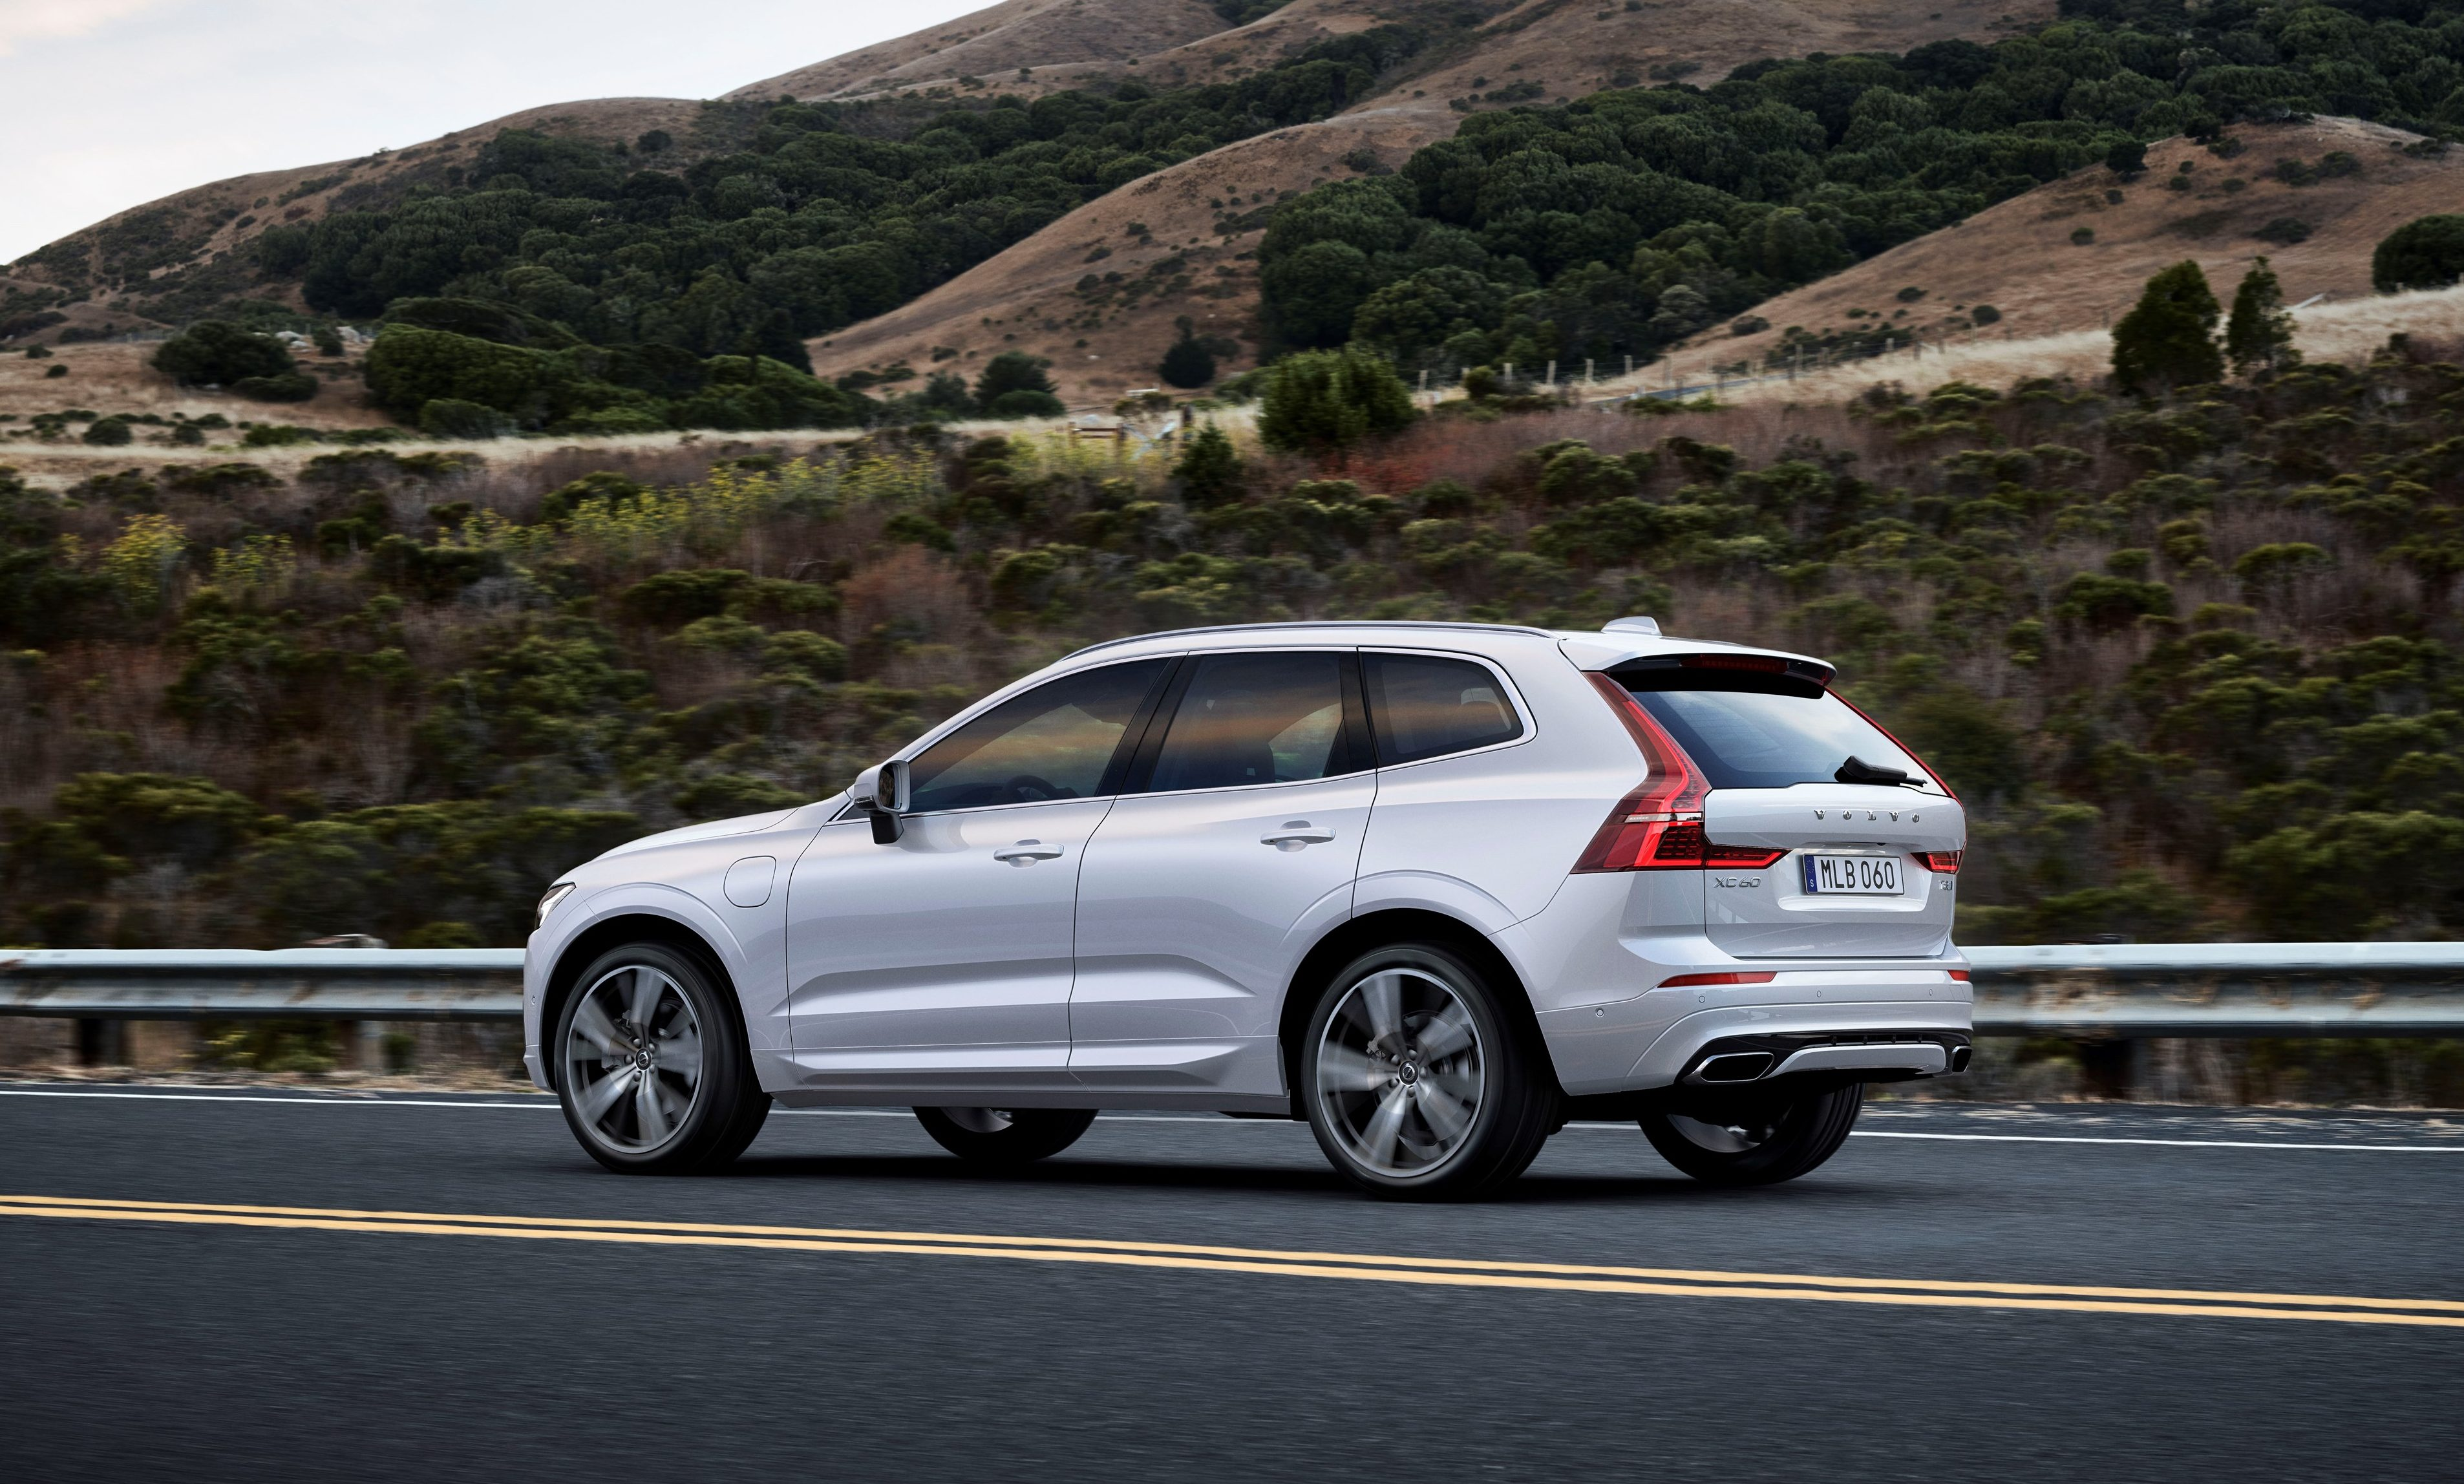 output tune goes touch ps up electric after treatment news the new twin polestar volvo to ups range engine